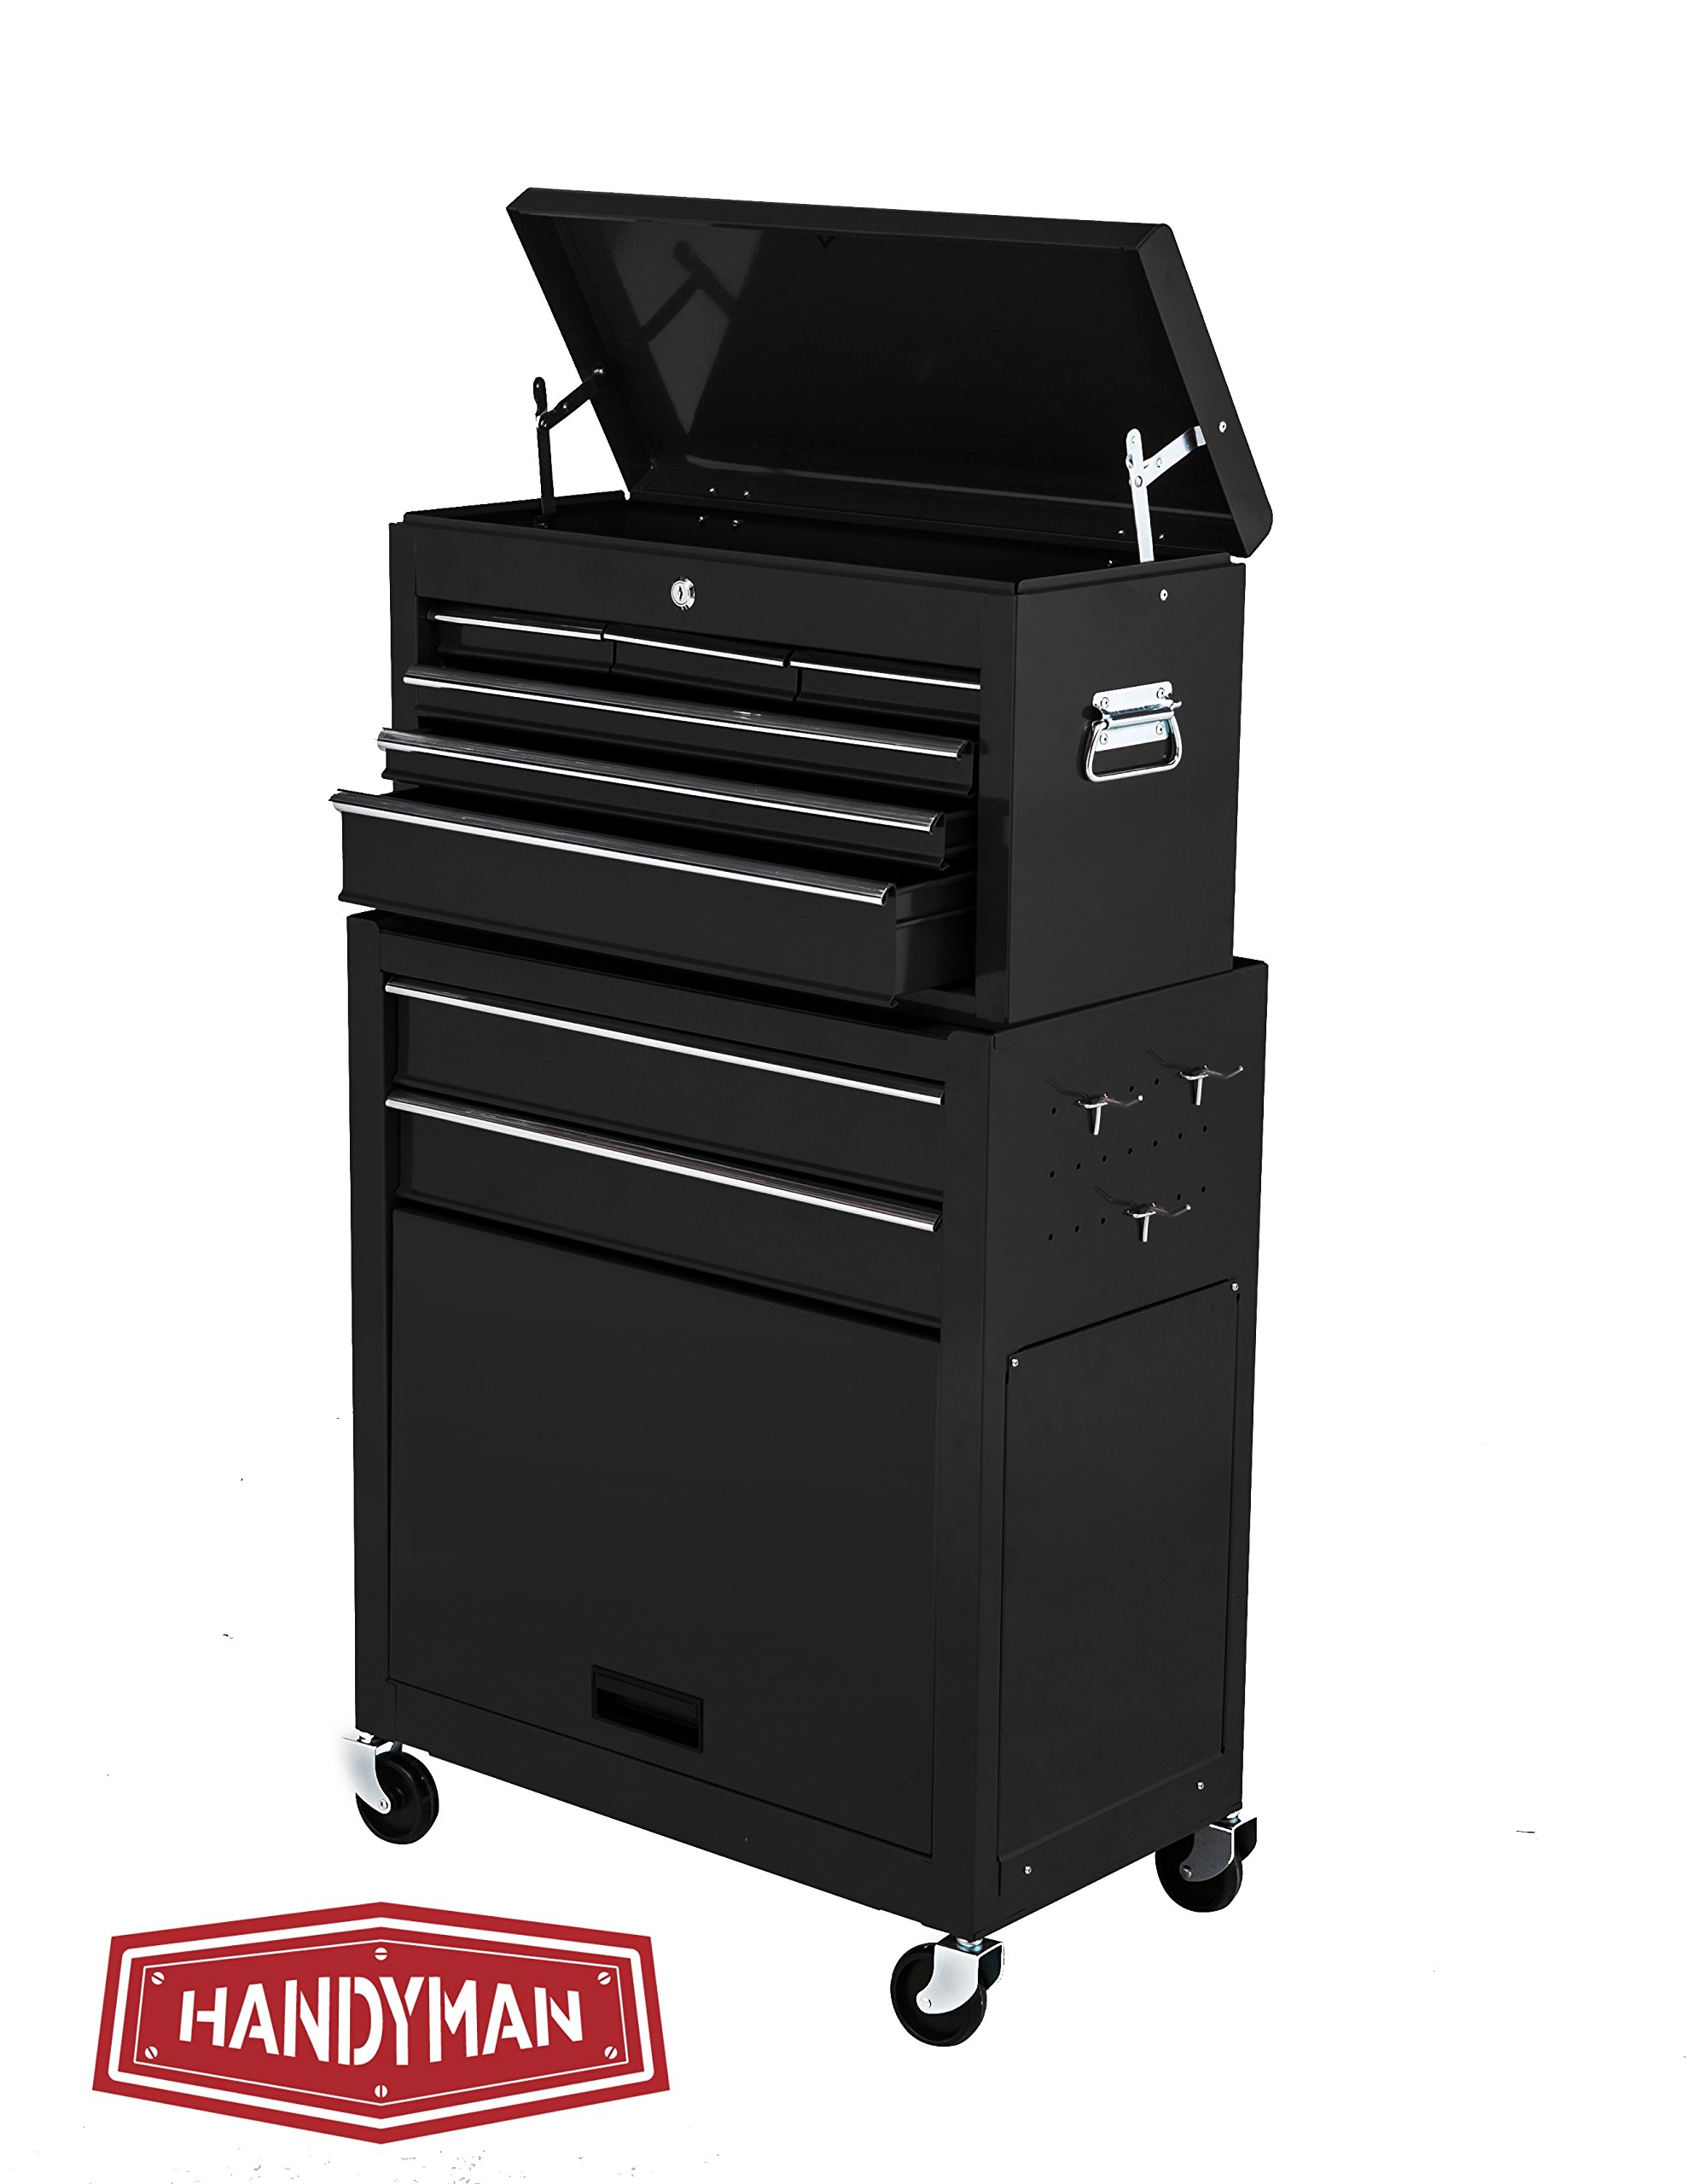 Handyman Heavy Duty Steel Toolbox with Chests and Roller Cabinets 4 Wheel Casters (Black) by Handyman